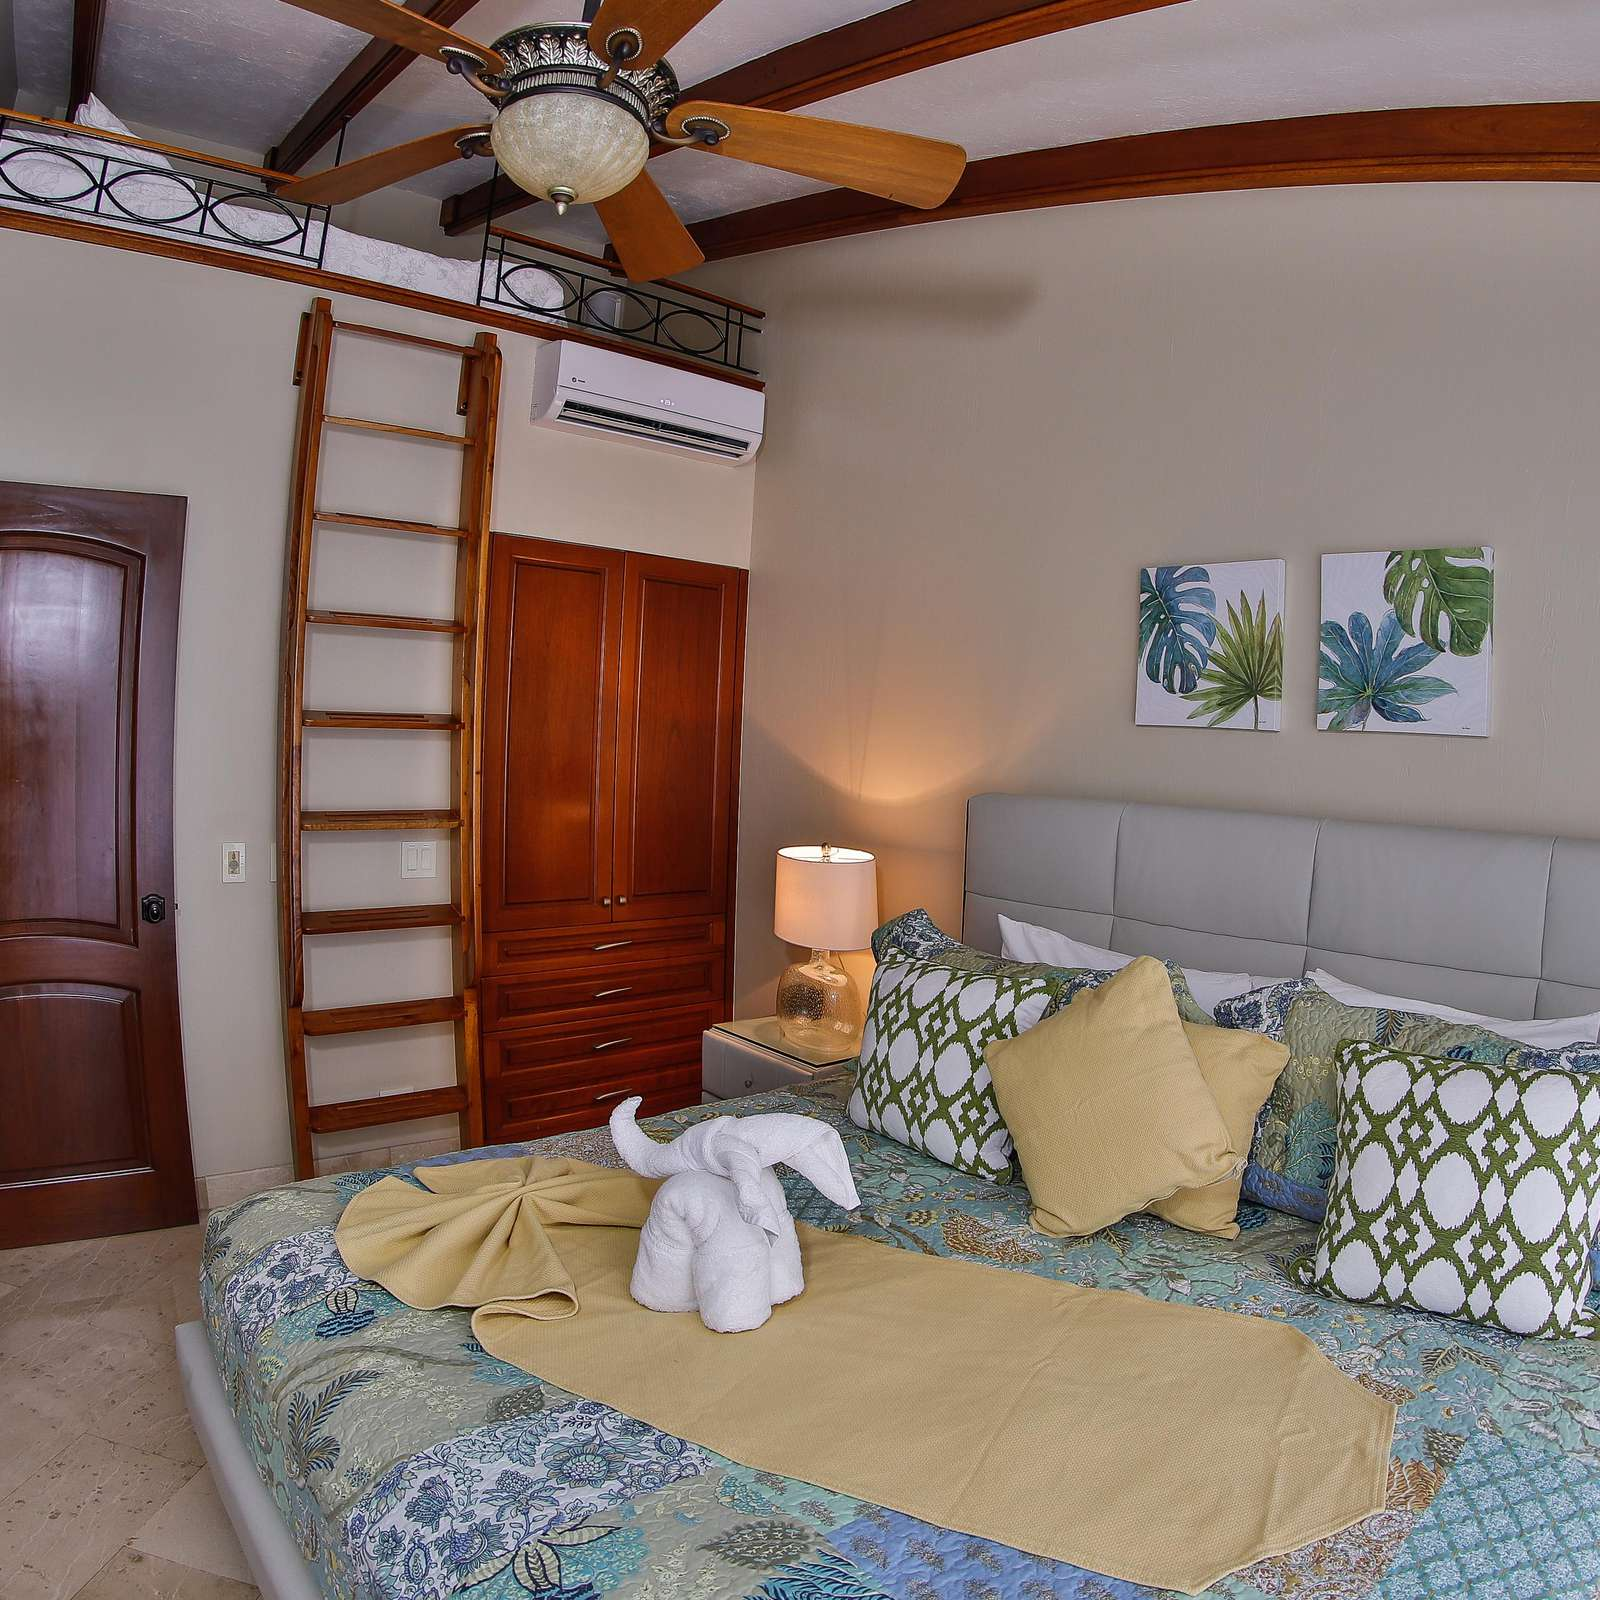 Guest bedroom, king bed and full size bed in the loft area